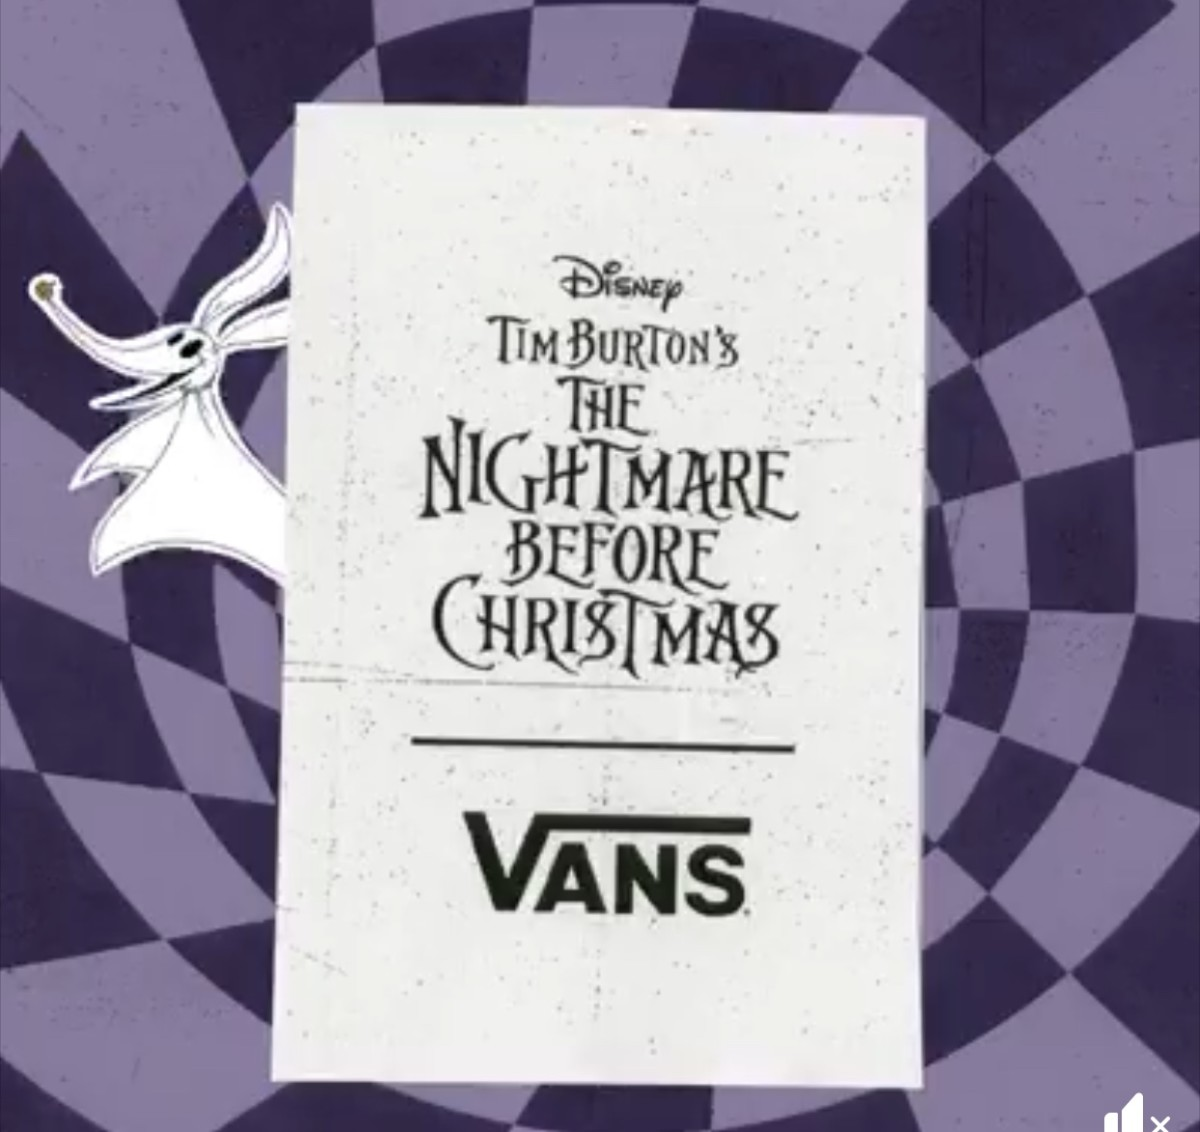 New Nightmare Before Christmas Line Coming Soon from Vans! 6